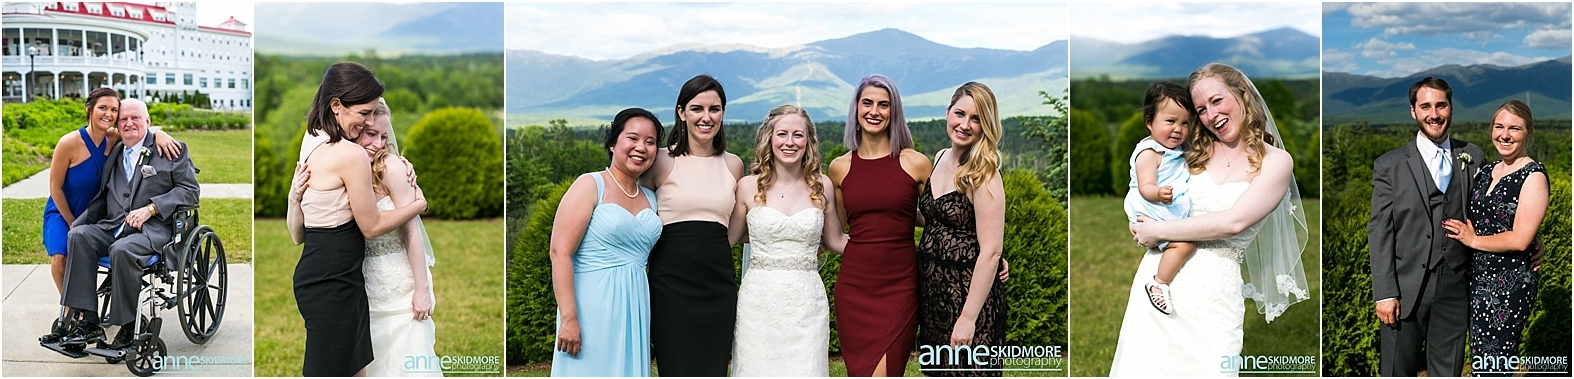 Mount_Washington_Hotel_Wedding_0038